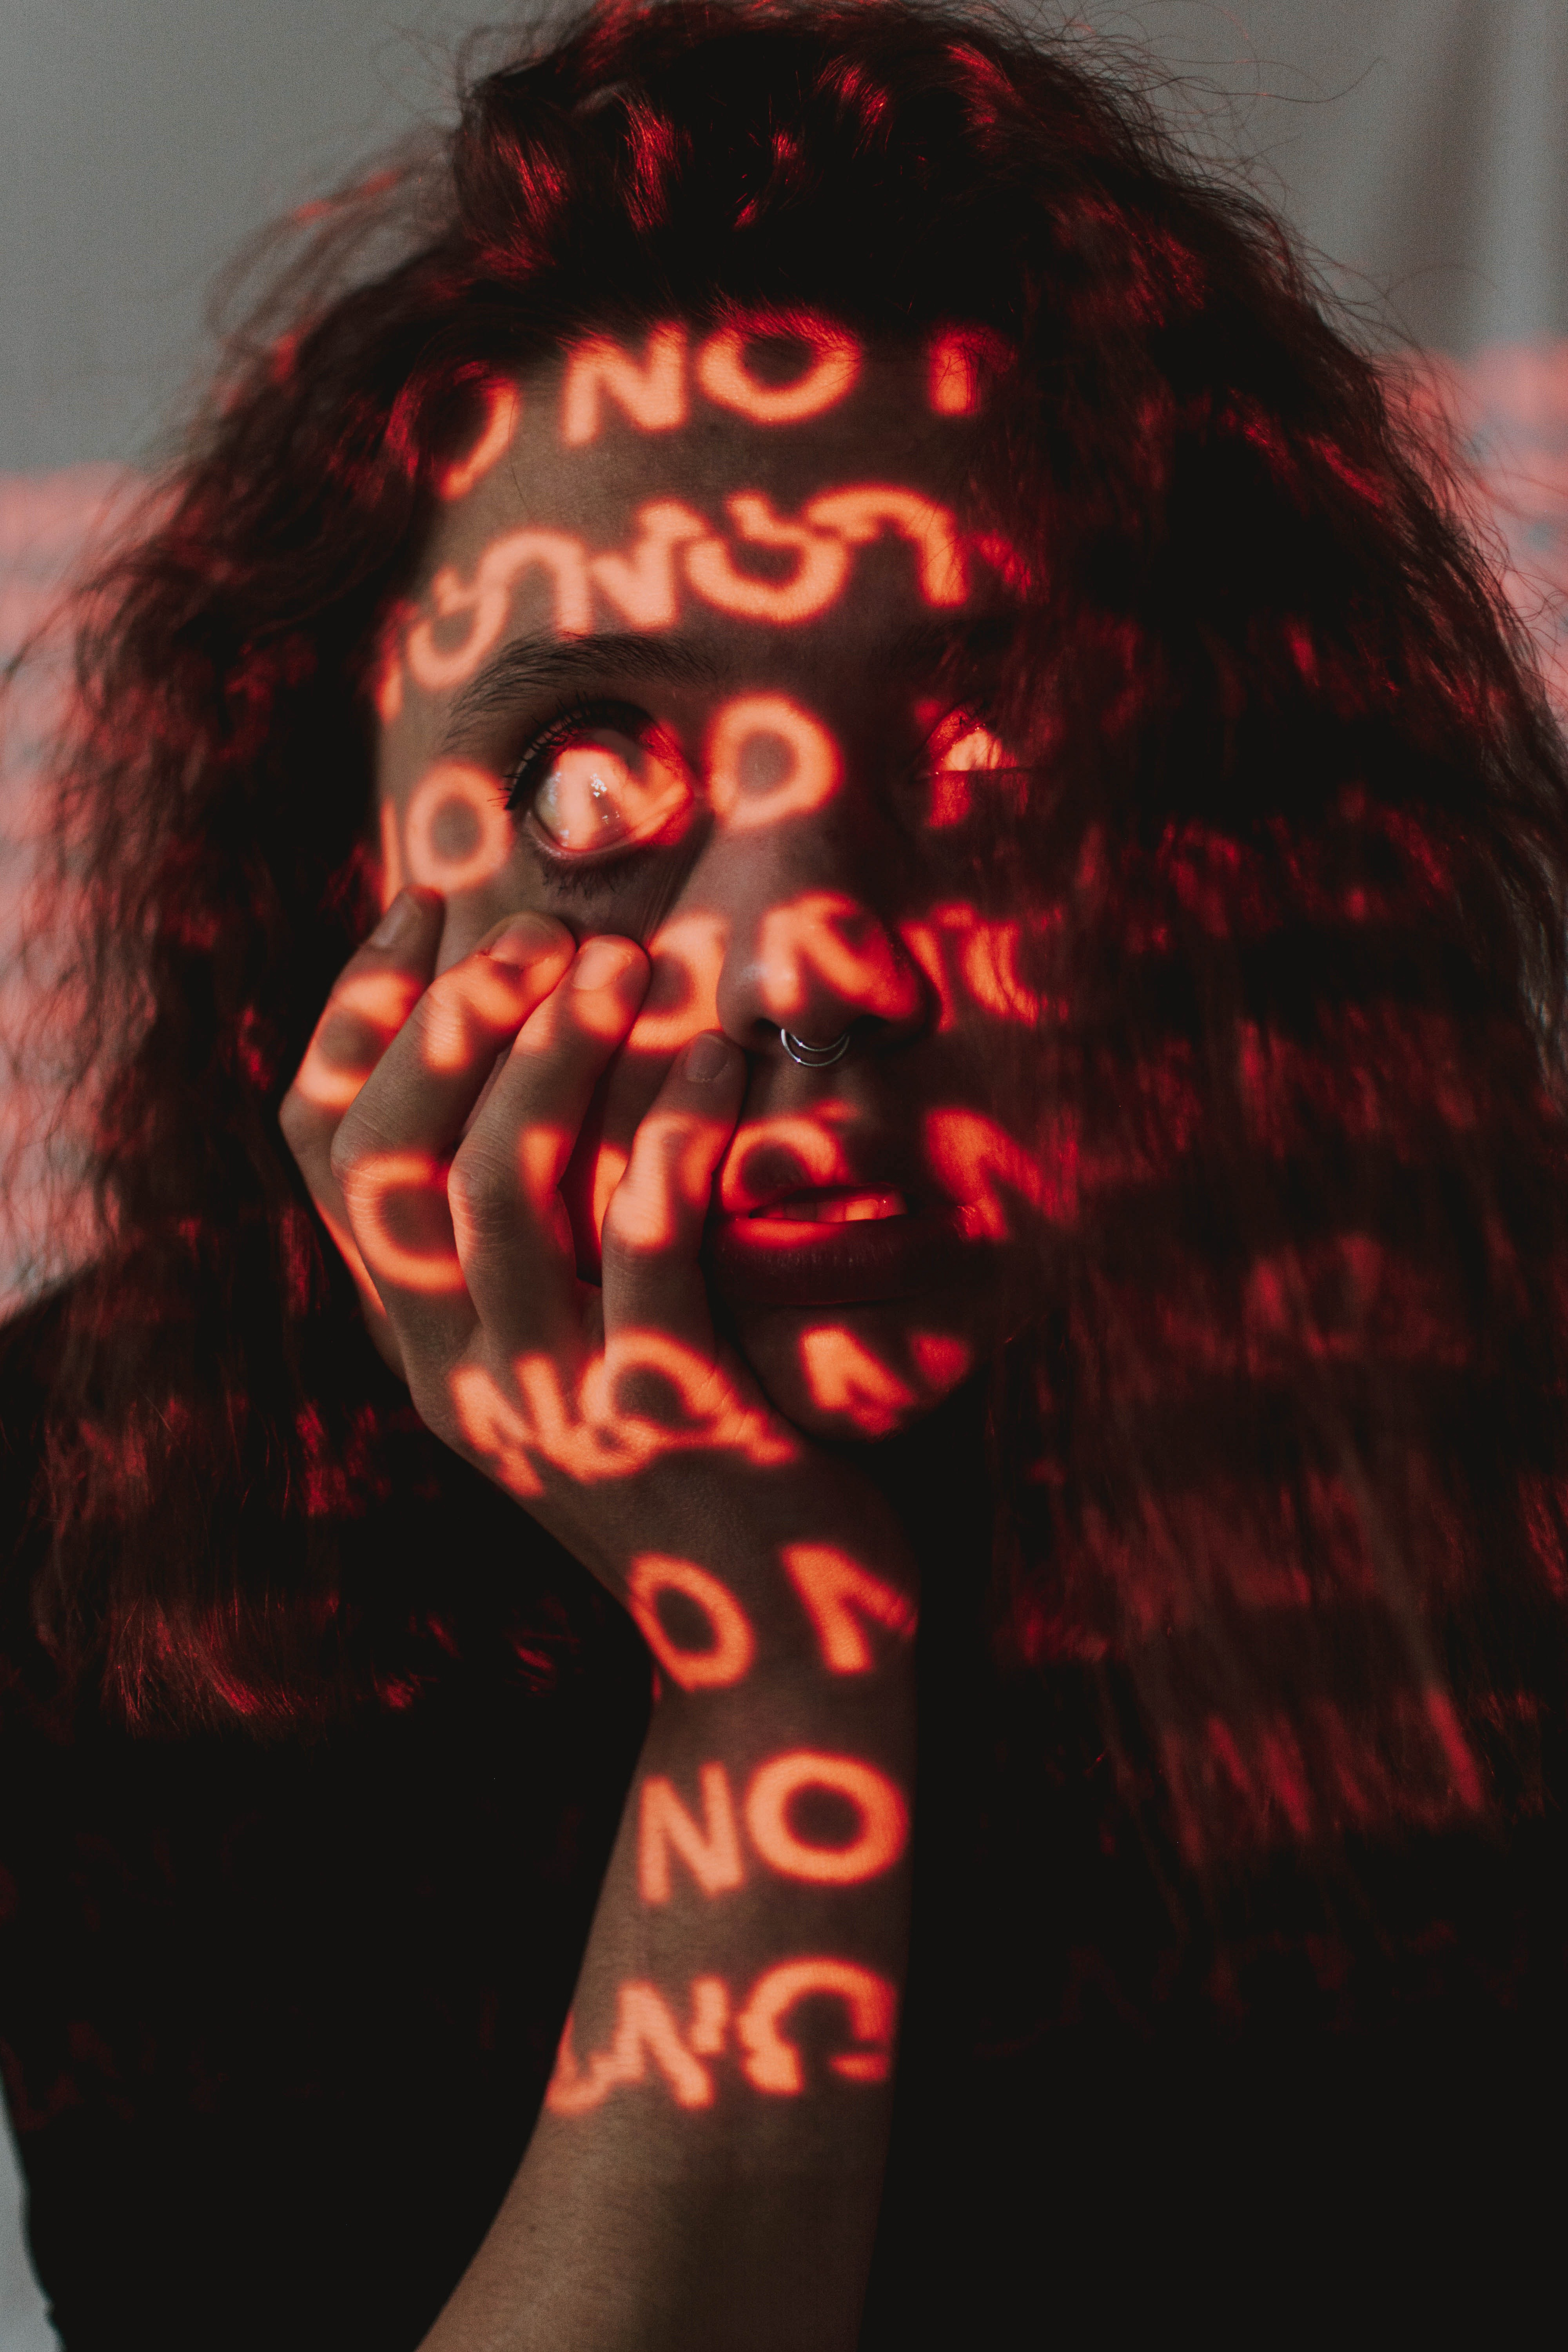 """woman with the word """"no"""" projected all over her face and body"""